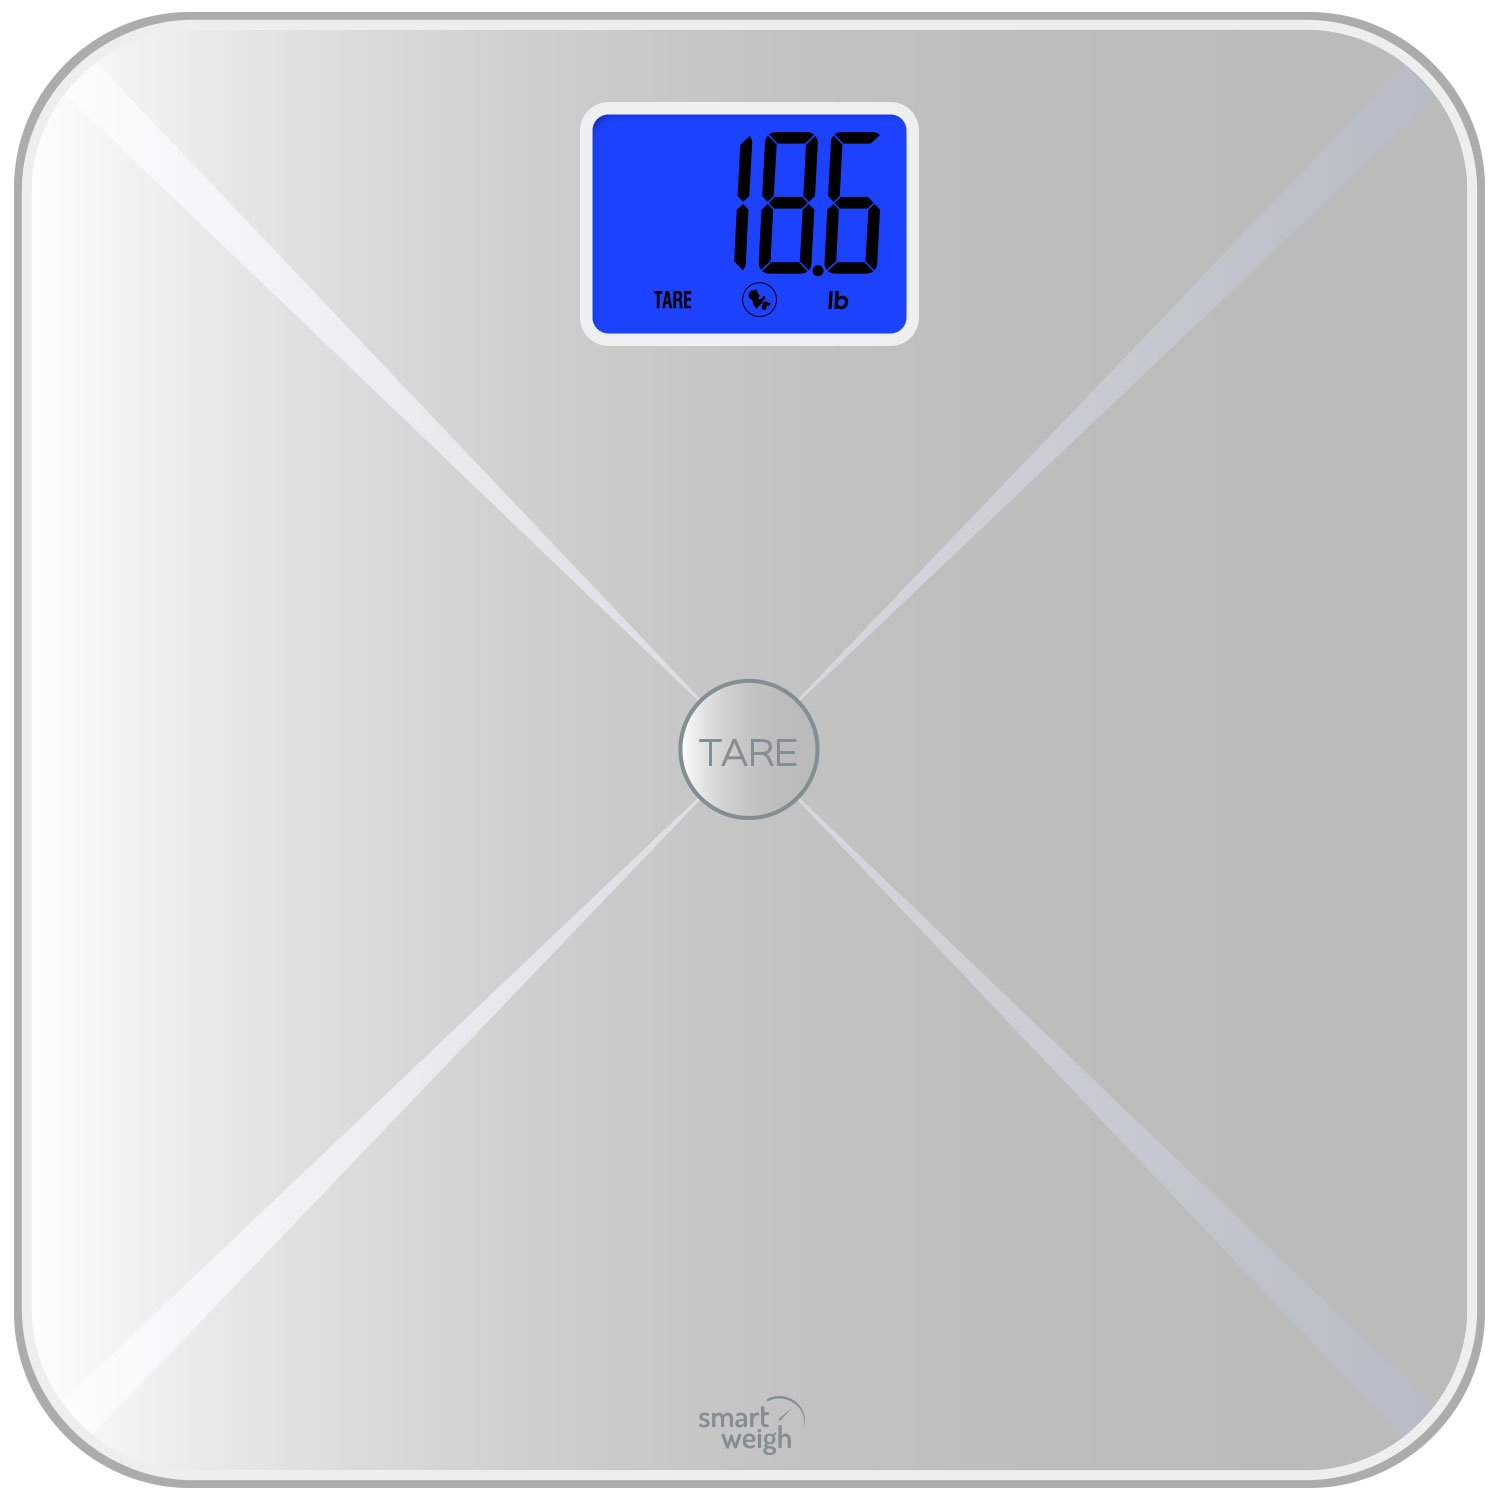 Best bathroom weight scales - Amazon Com Smart Weigh Smart Tare Digital Body Weight Bathroom Scale With Baby Or Pet Tare Weighing Technology Large Lcd Display And Tempered Glass